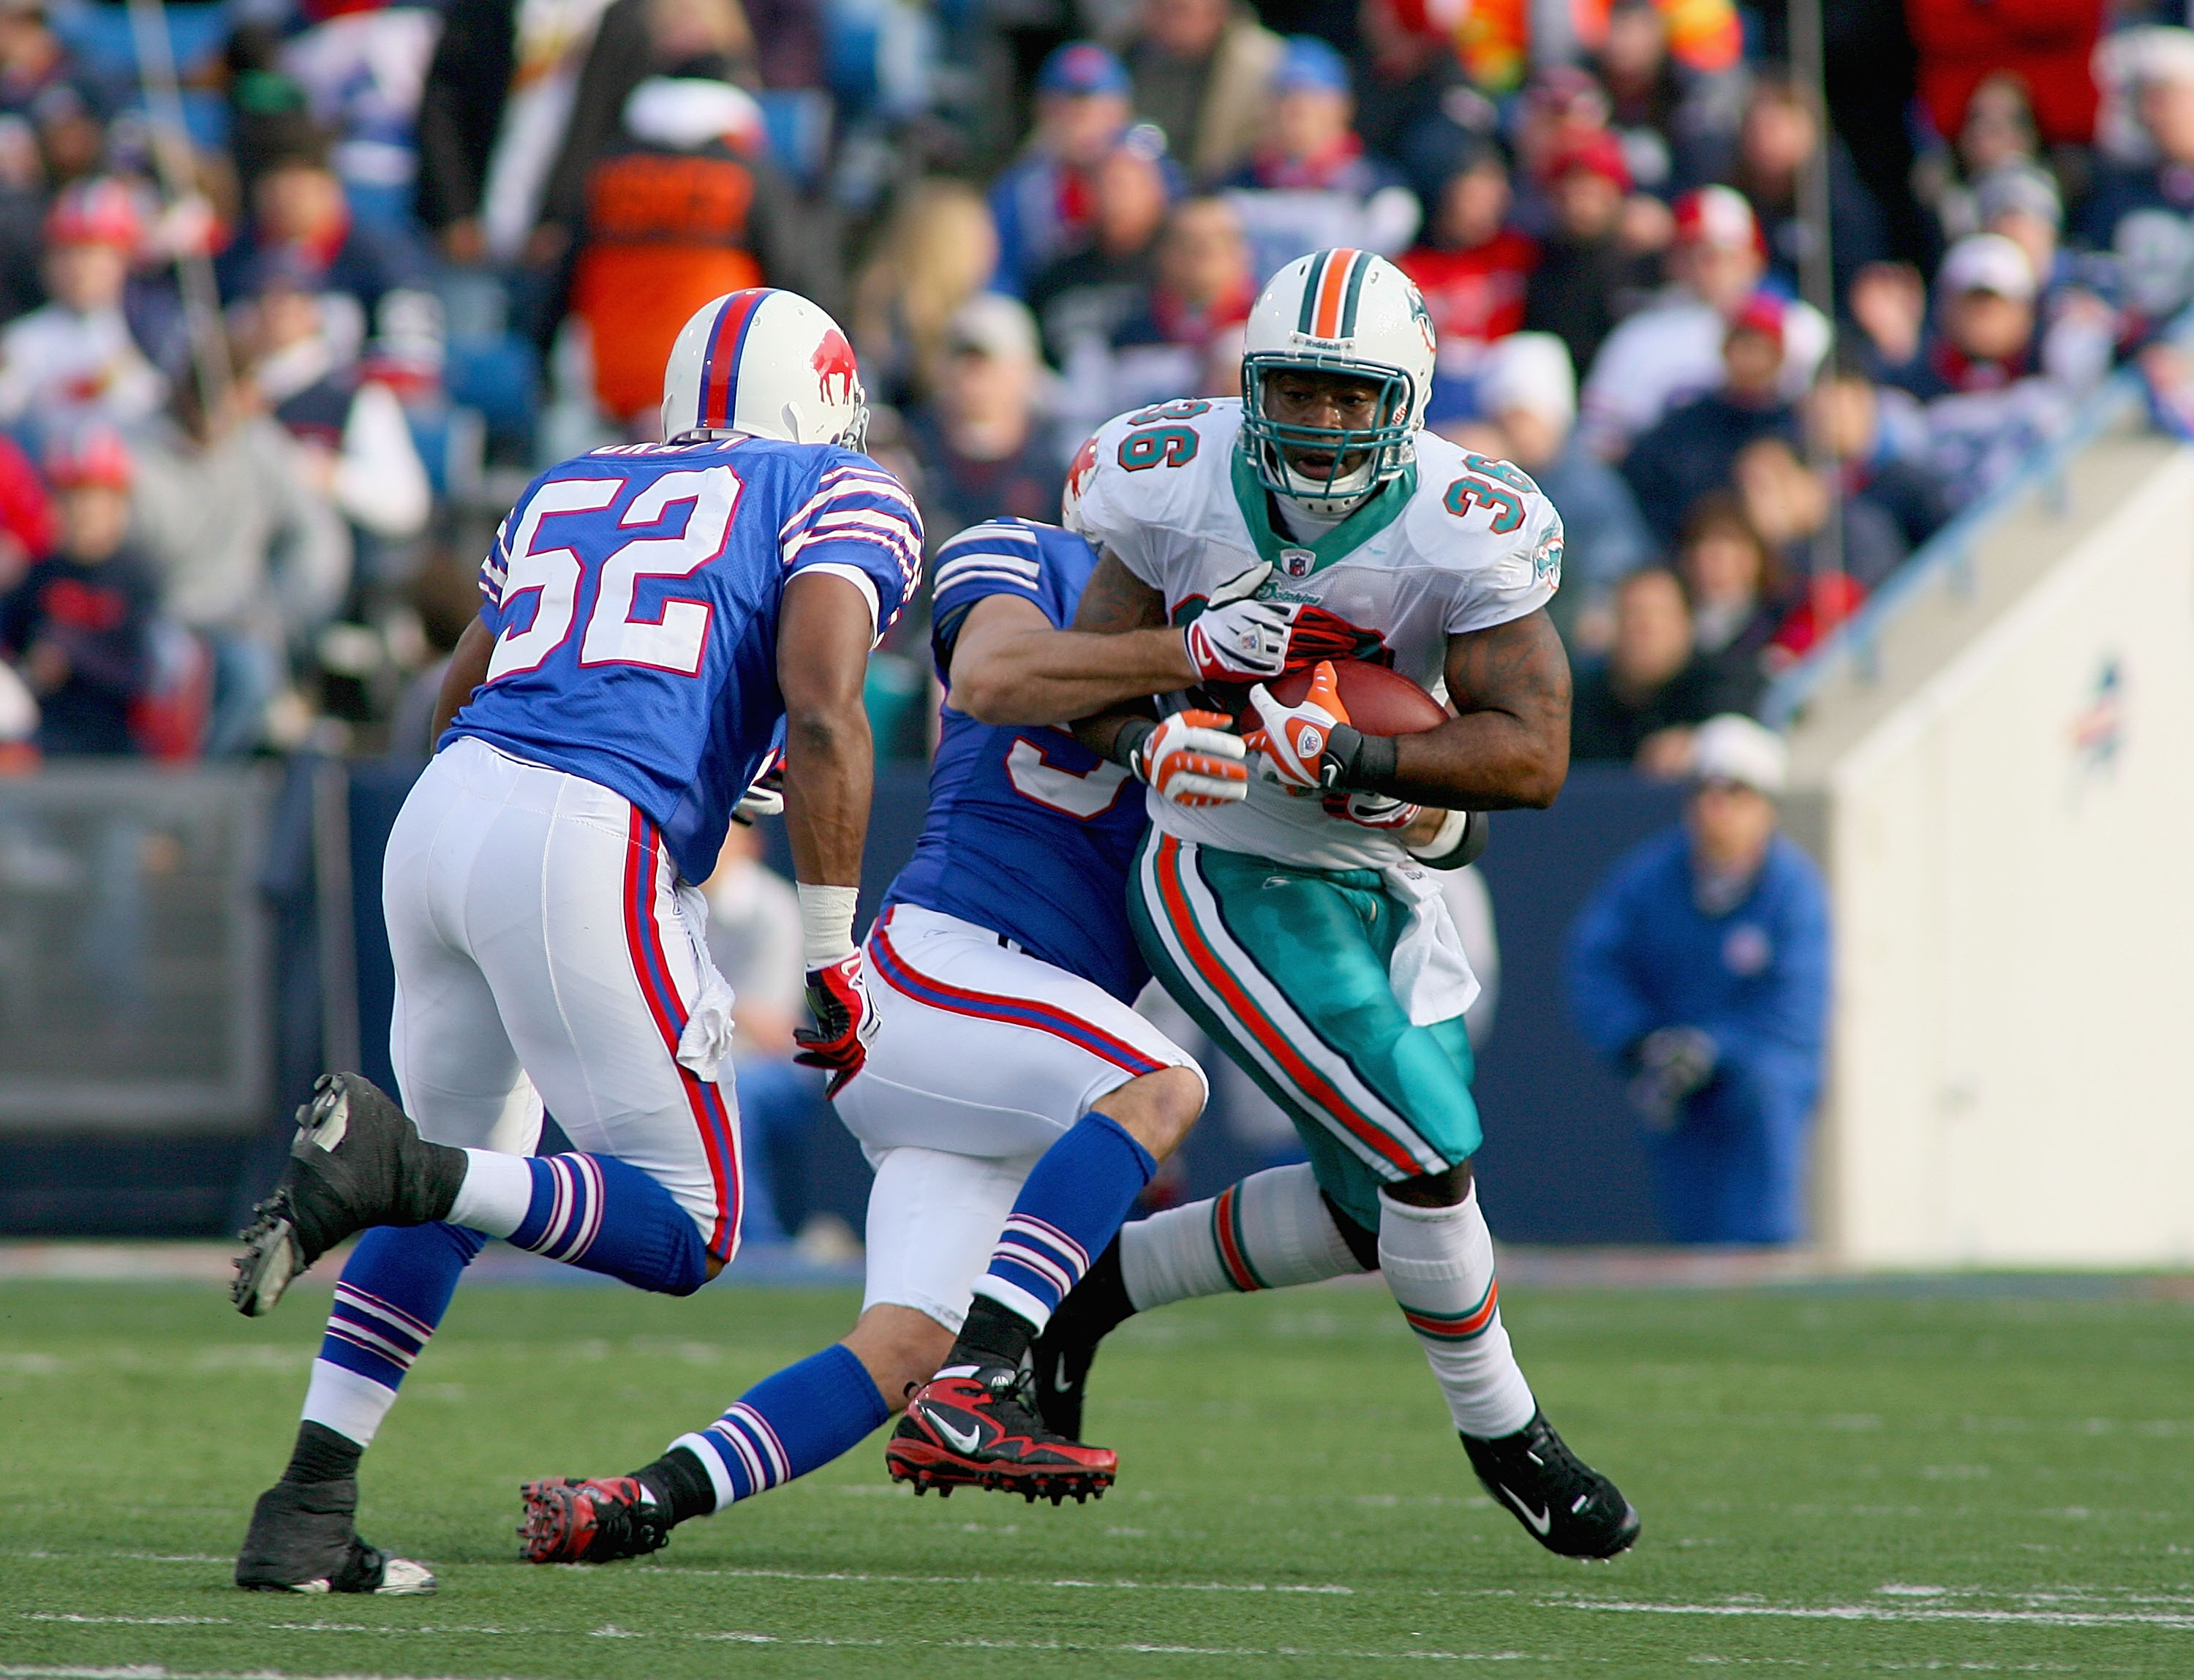 ORCHARD PARK, NY - NOVEMBER 29: Lousaka Polite #36 of the Miami Dolphins runs as Paul Posluszny #51 and Chris Draft #52 of the Buffalo Bills come in to make the tackle at Ralph Wilson Stadium on November 29, 2009 in Orchard Park, New York. Buffalo won 31-